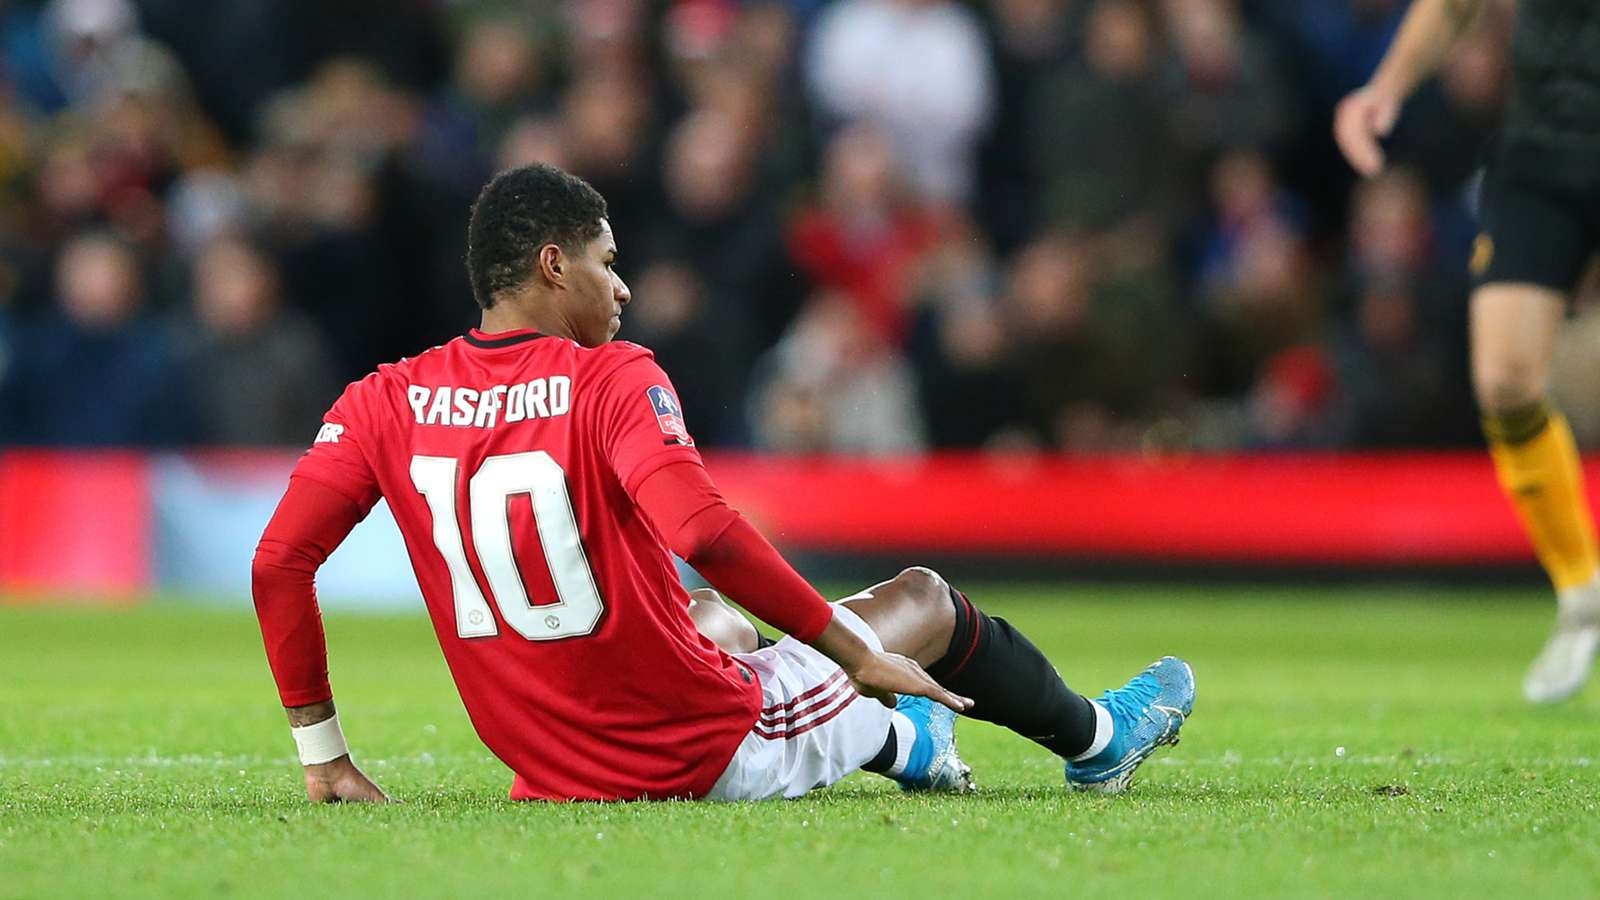 Marcus Rashford: Ole Solskjaer gives no guarantees Manchester United striker will return this season - Bóng Đá